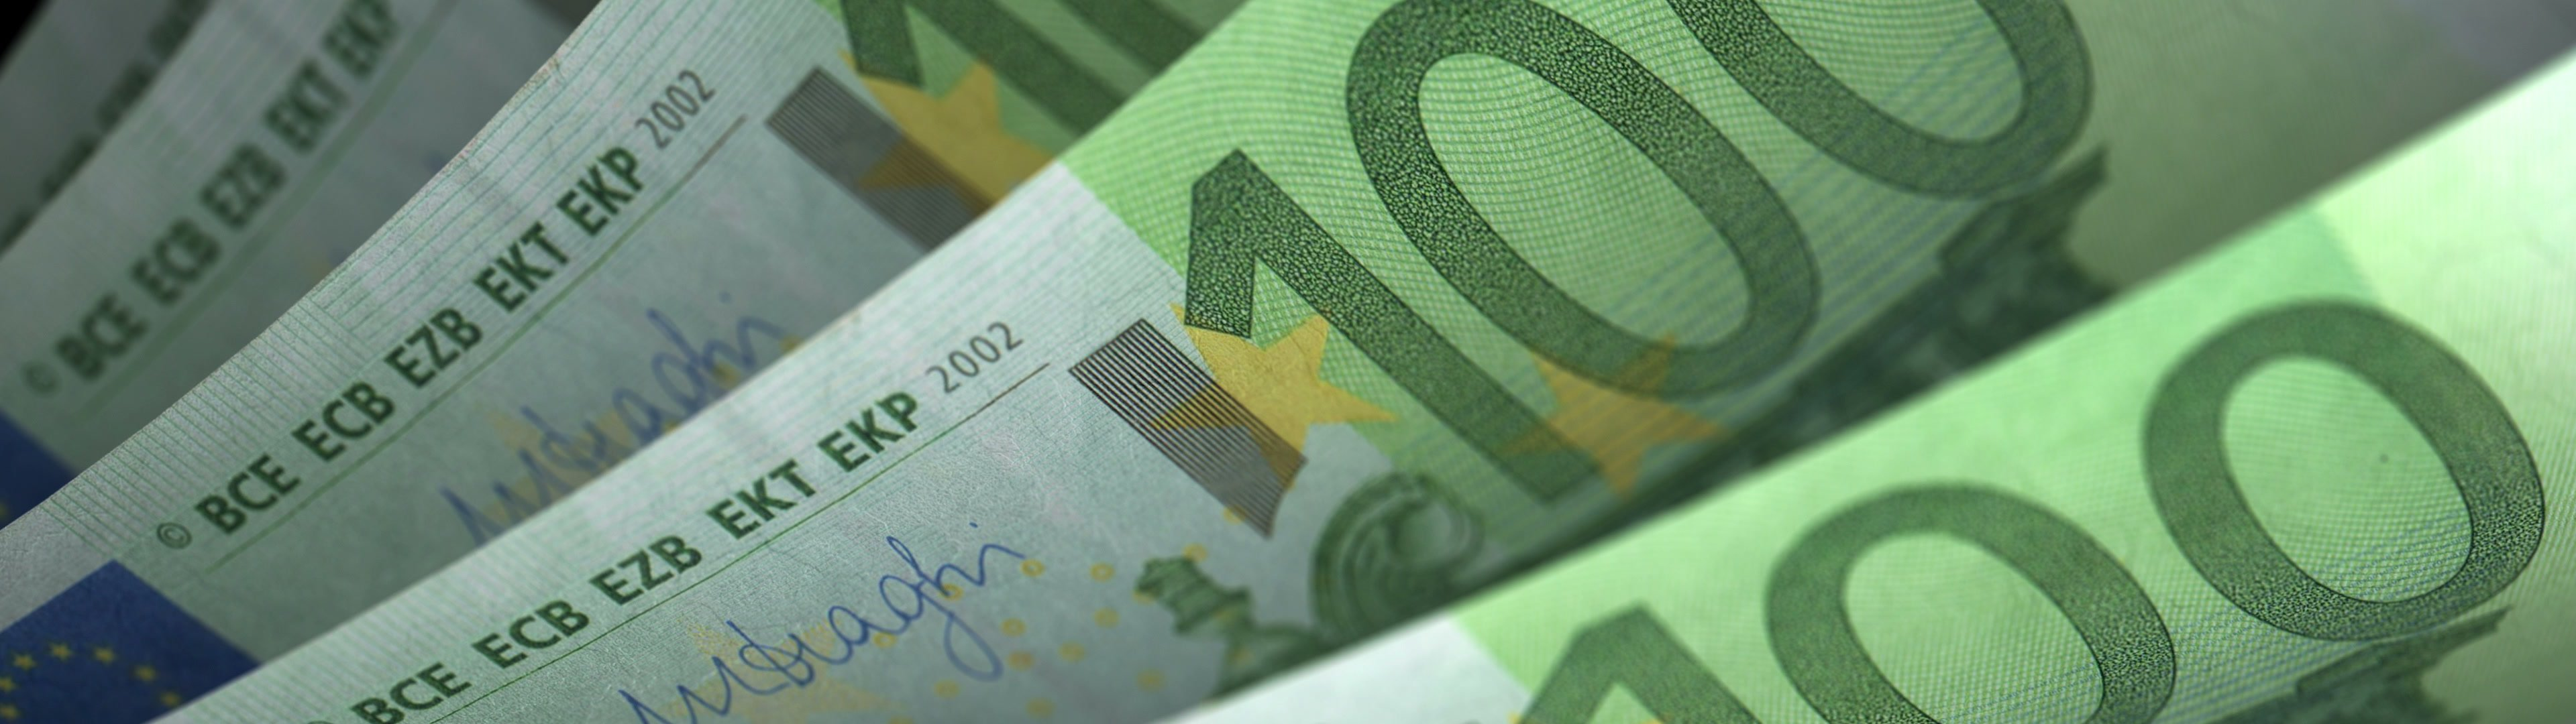 Cash counting. Euro banknotes. Easy to loop. | Cash counting. Euro banknotes. Shallow depth of field, easy to loop. - ID:23601